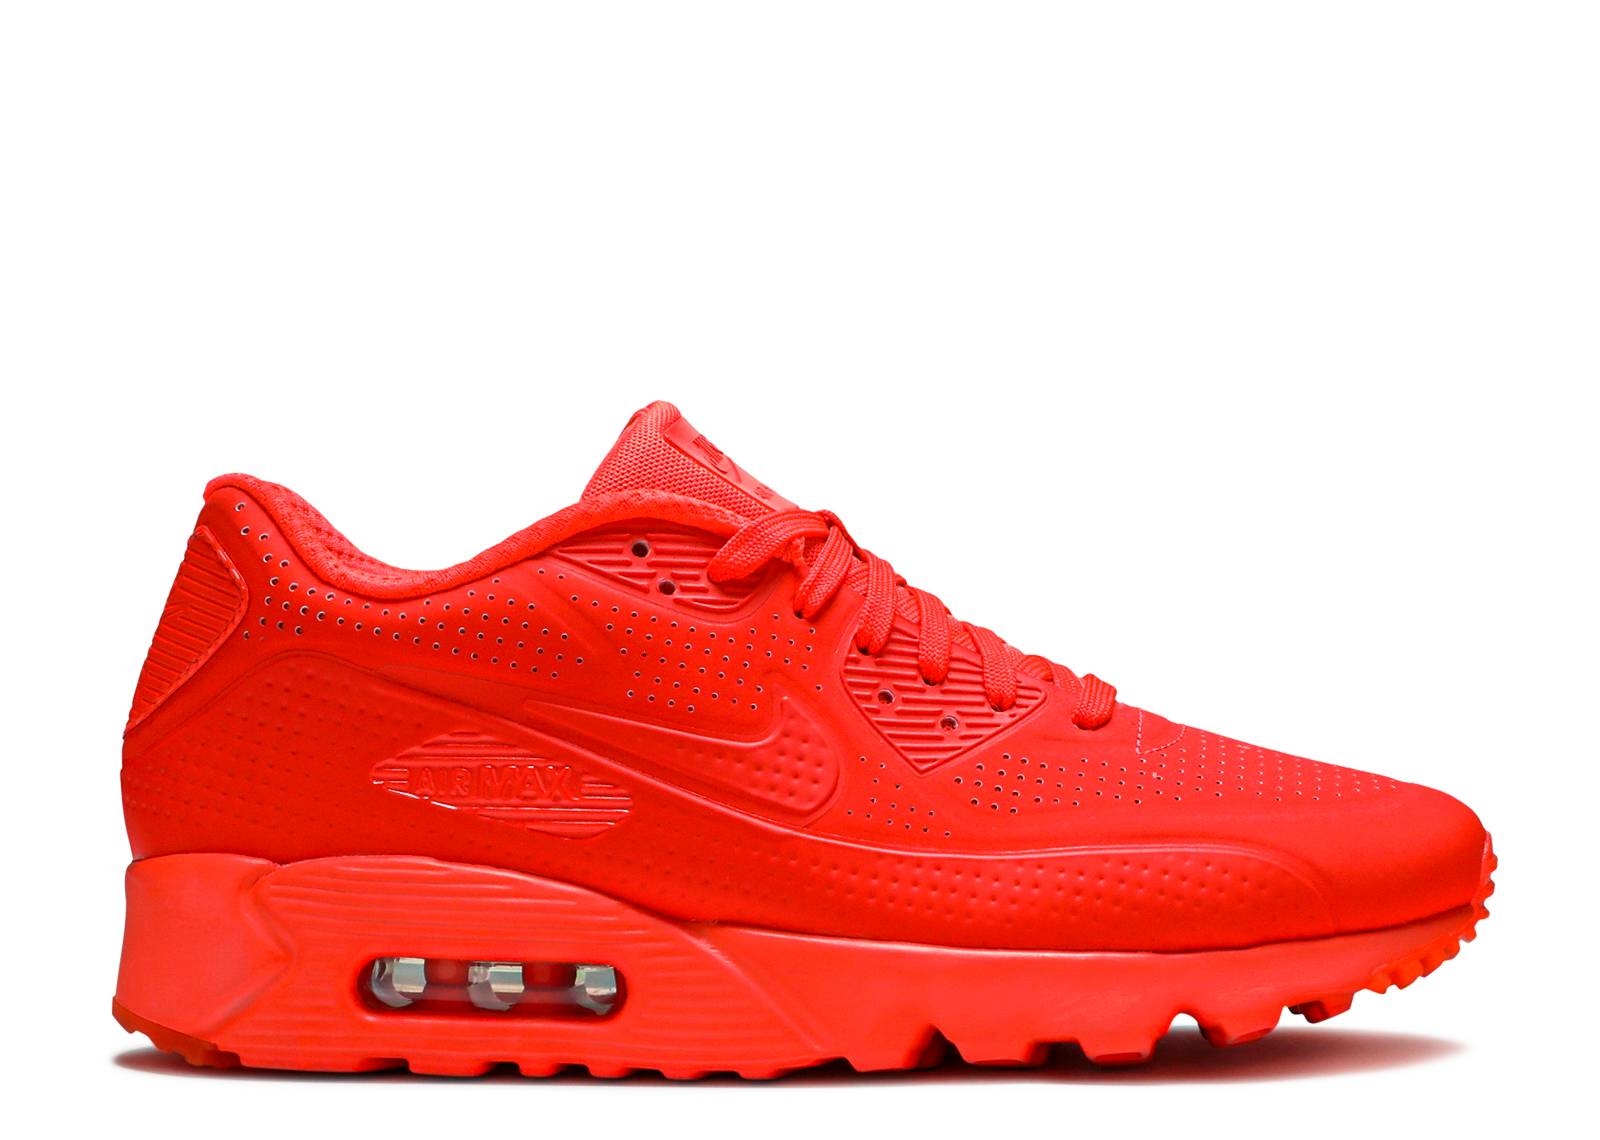 air max 90 ultra moire bright crimson bright crimson white. Black Bedroom Furniture Sets. Home Design Ideas